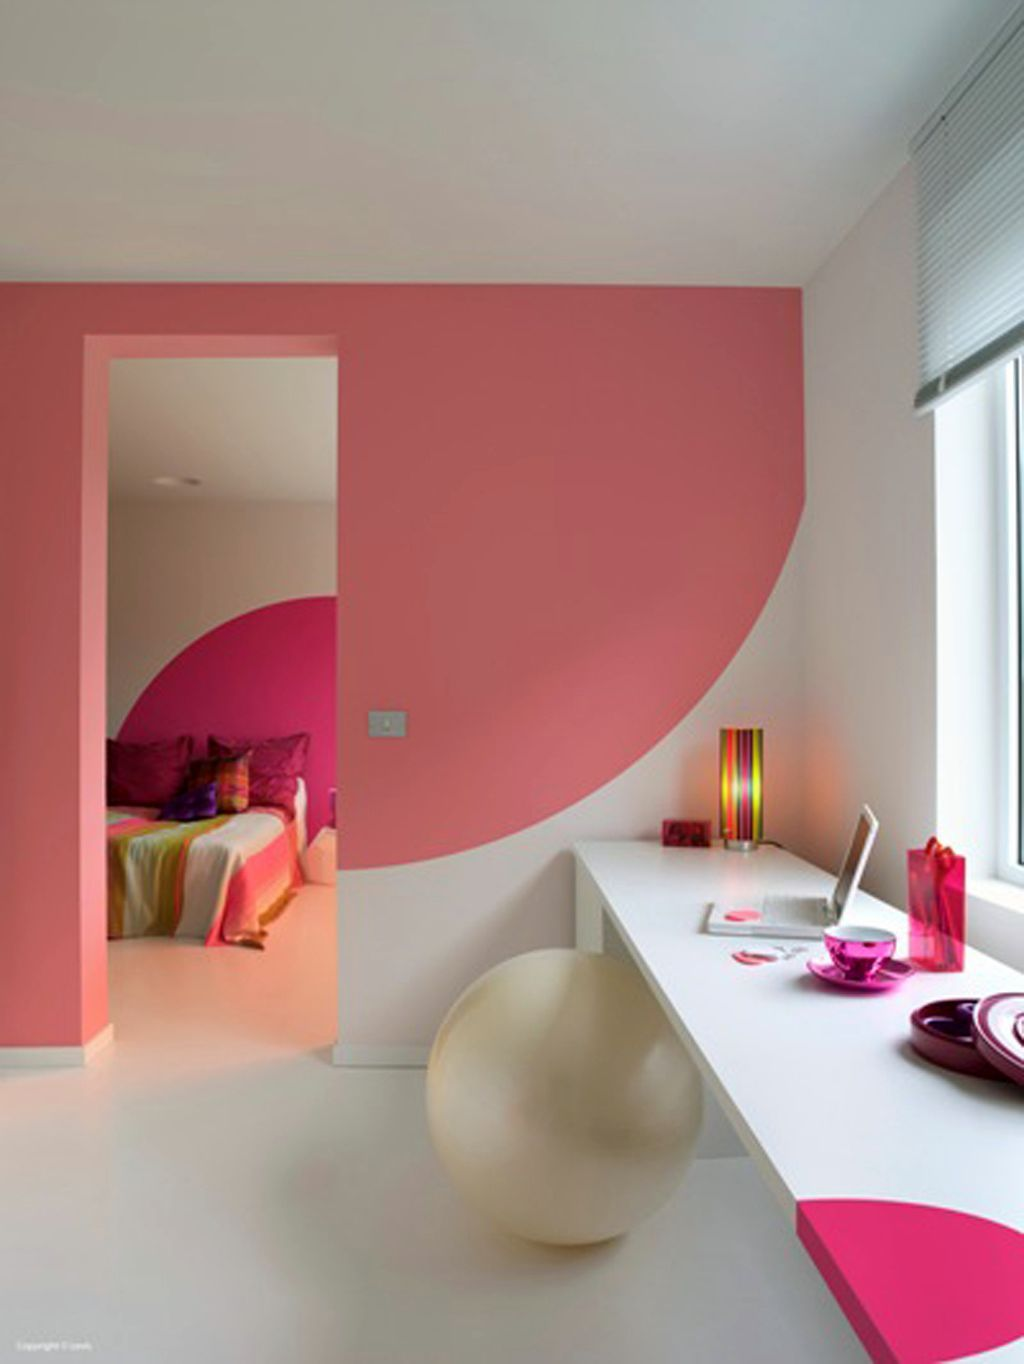 Pink bedroom paint ideas - Image Cool Bedroom Paint Designs Half Circle Pink Cool Wall Painting Designs